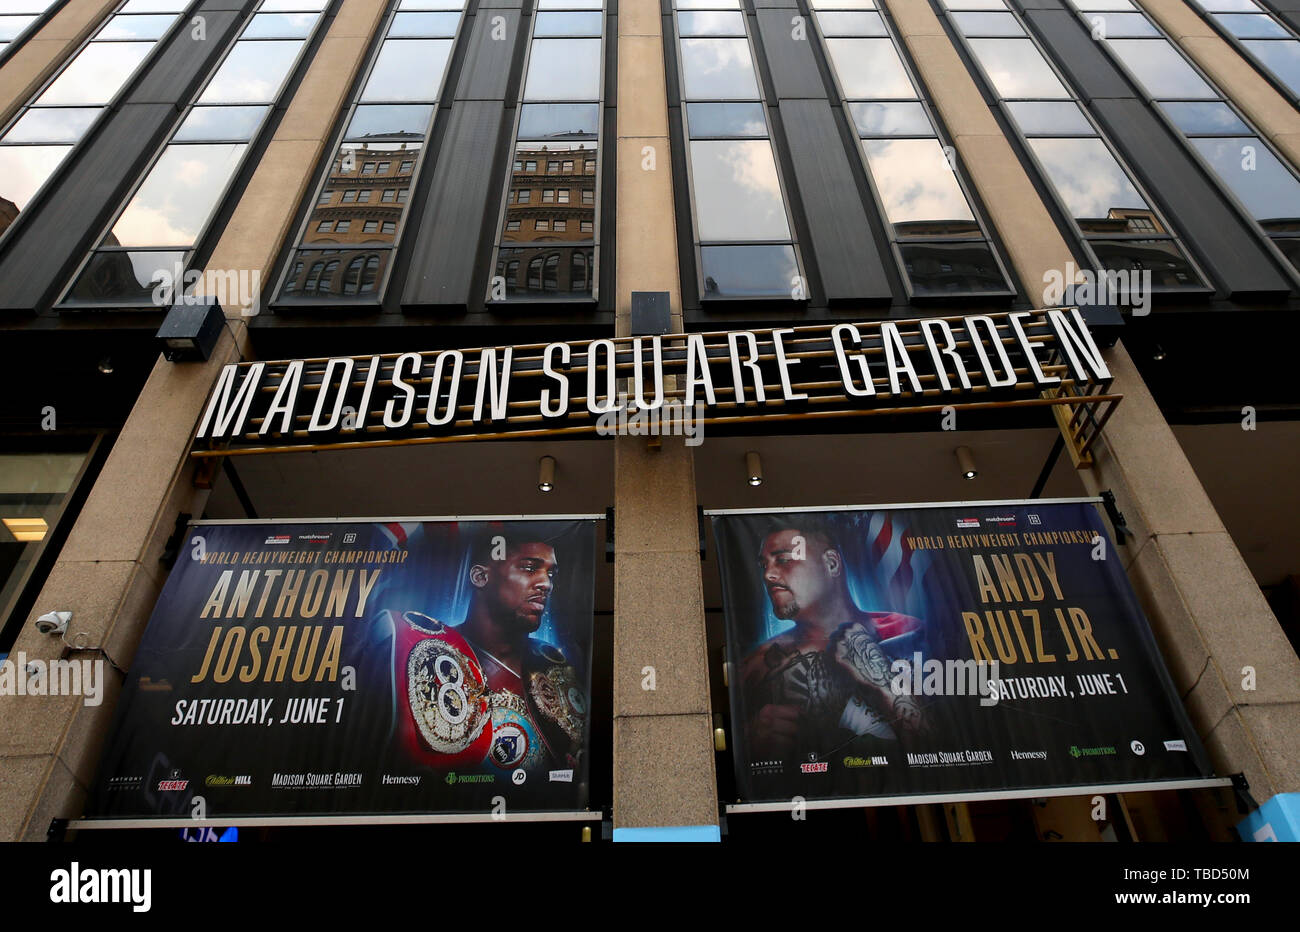 Posters Featuring Anthony Joshua And Andy Ruiz Outside Madison